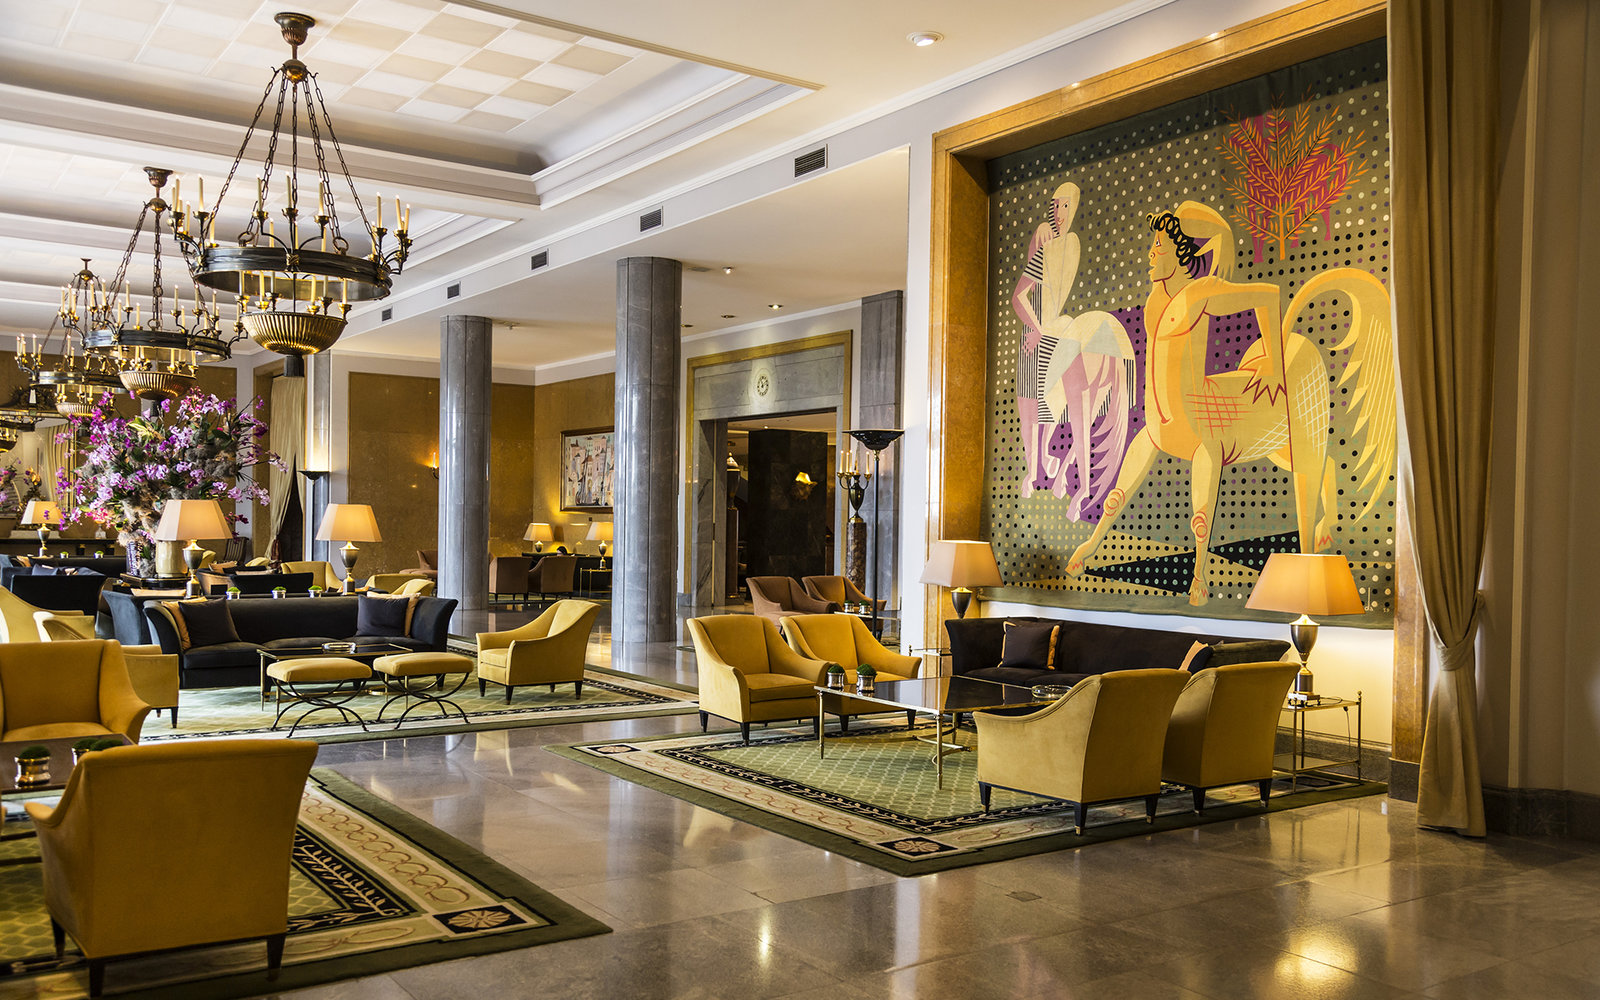 Hotel Tivoli De Lisboa Four Seasons Hotel Ritz Lisbon | Travel + Leisure